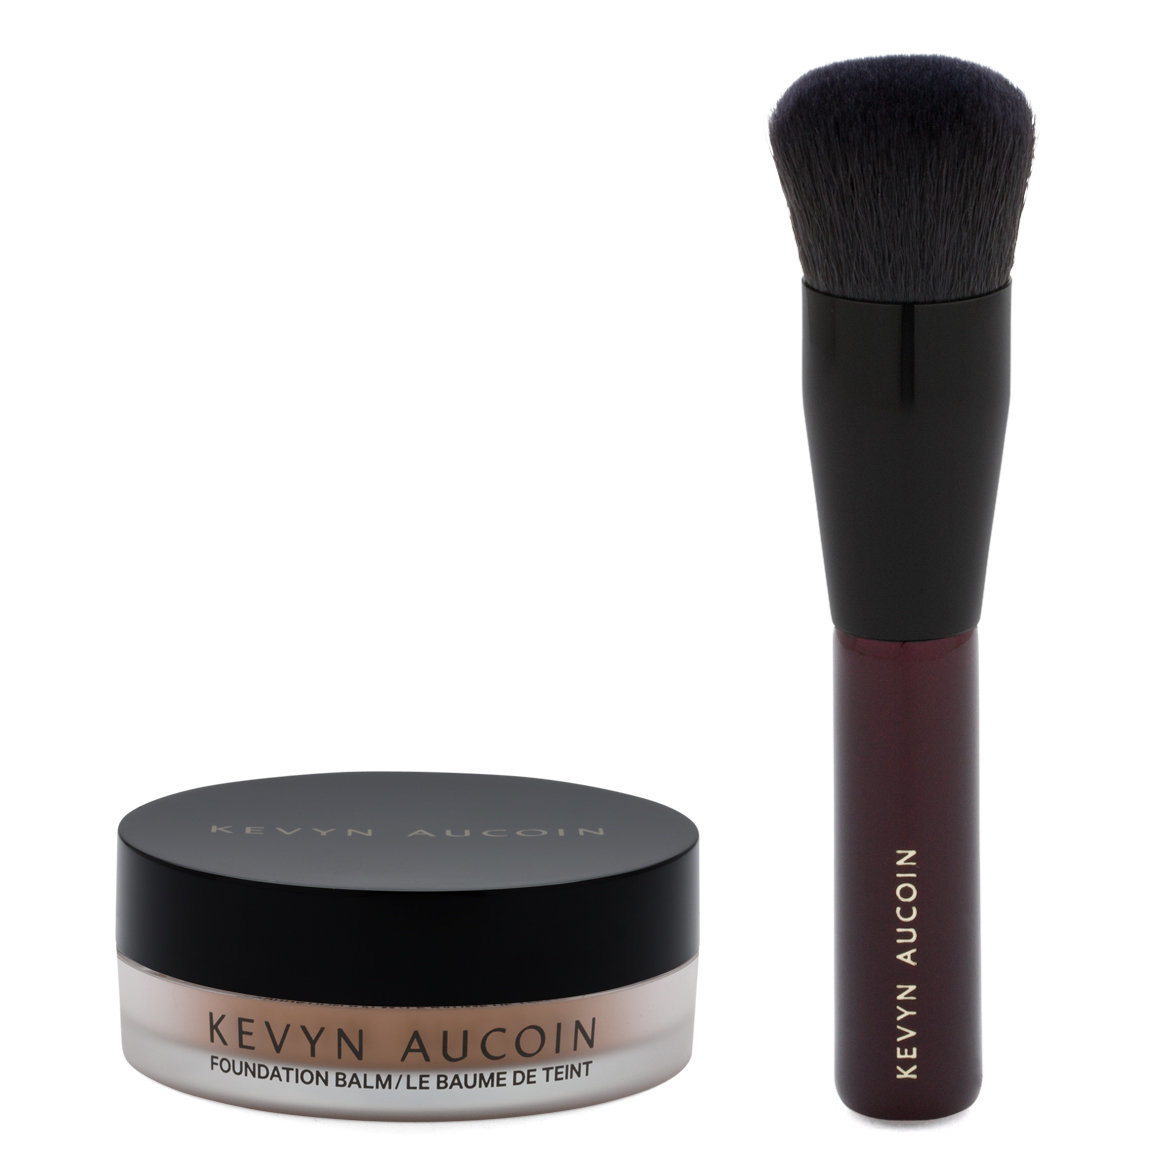 Kevyn Aucoin Foundation Balm FB 10.5